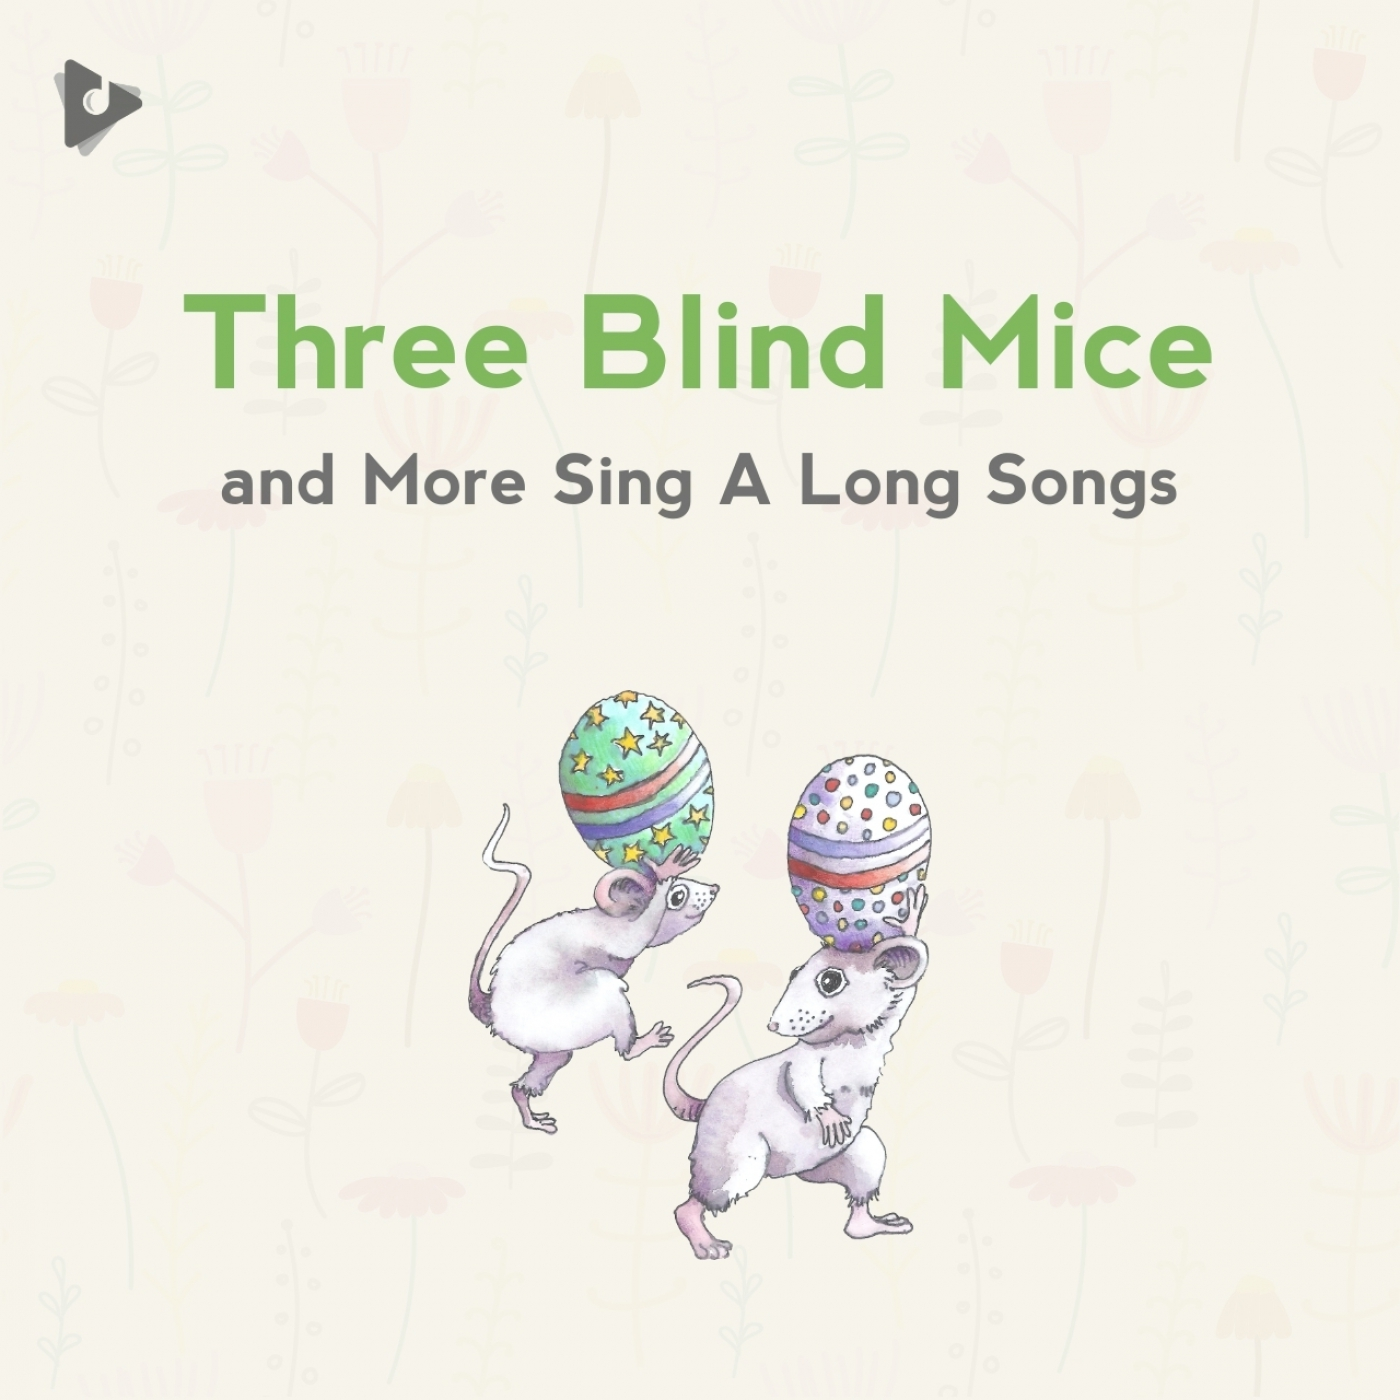 Three Blind Mice and More Sing A Long Songs